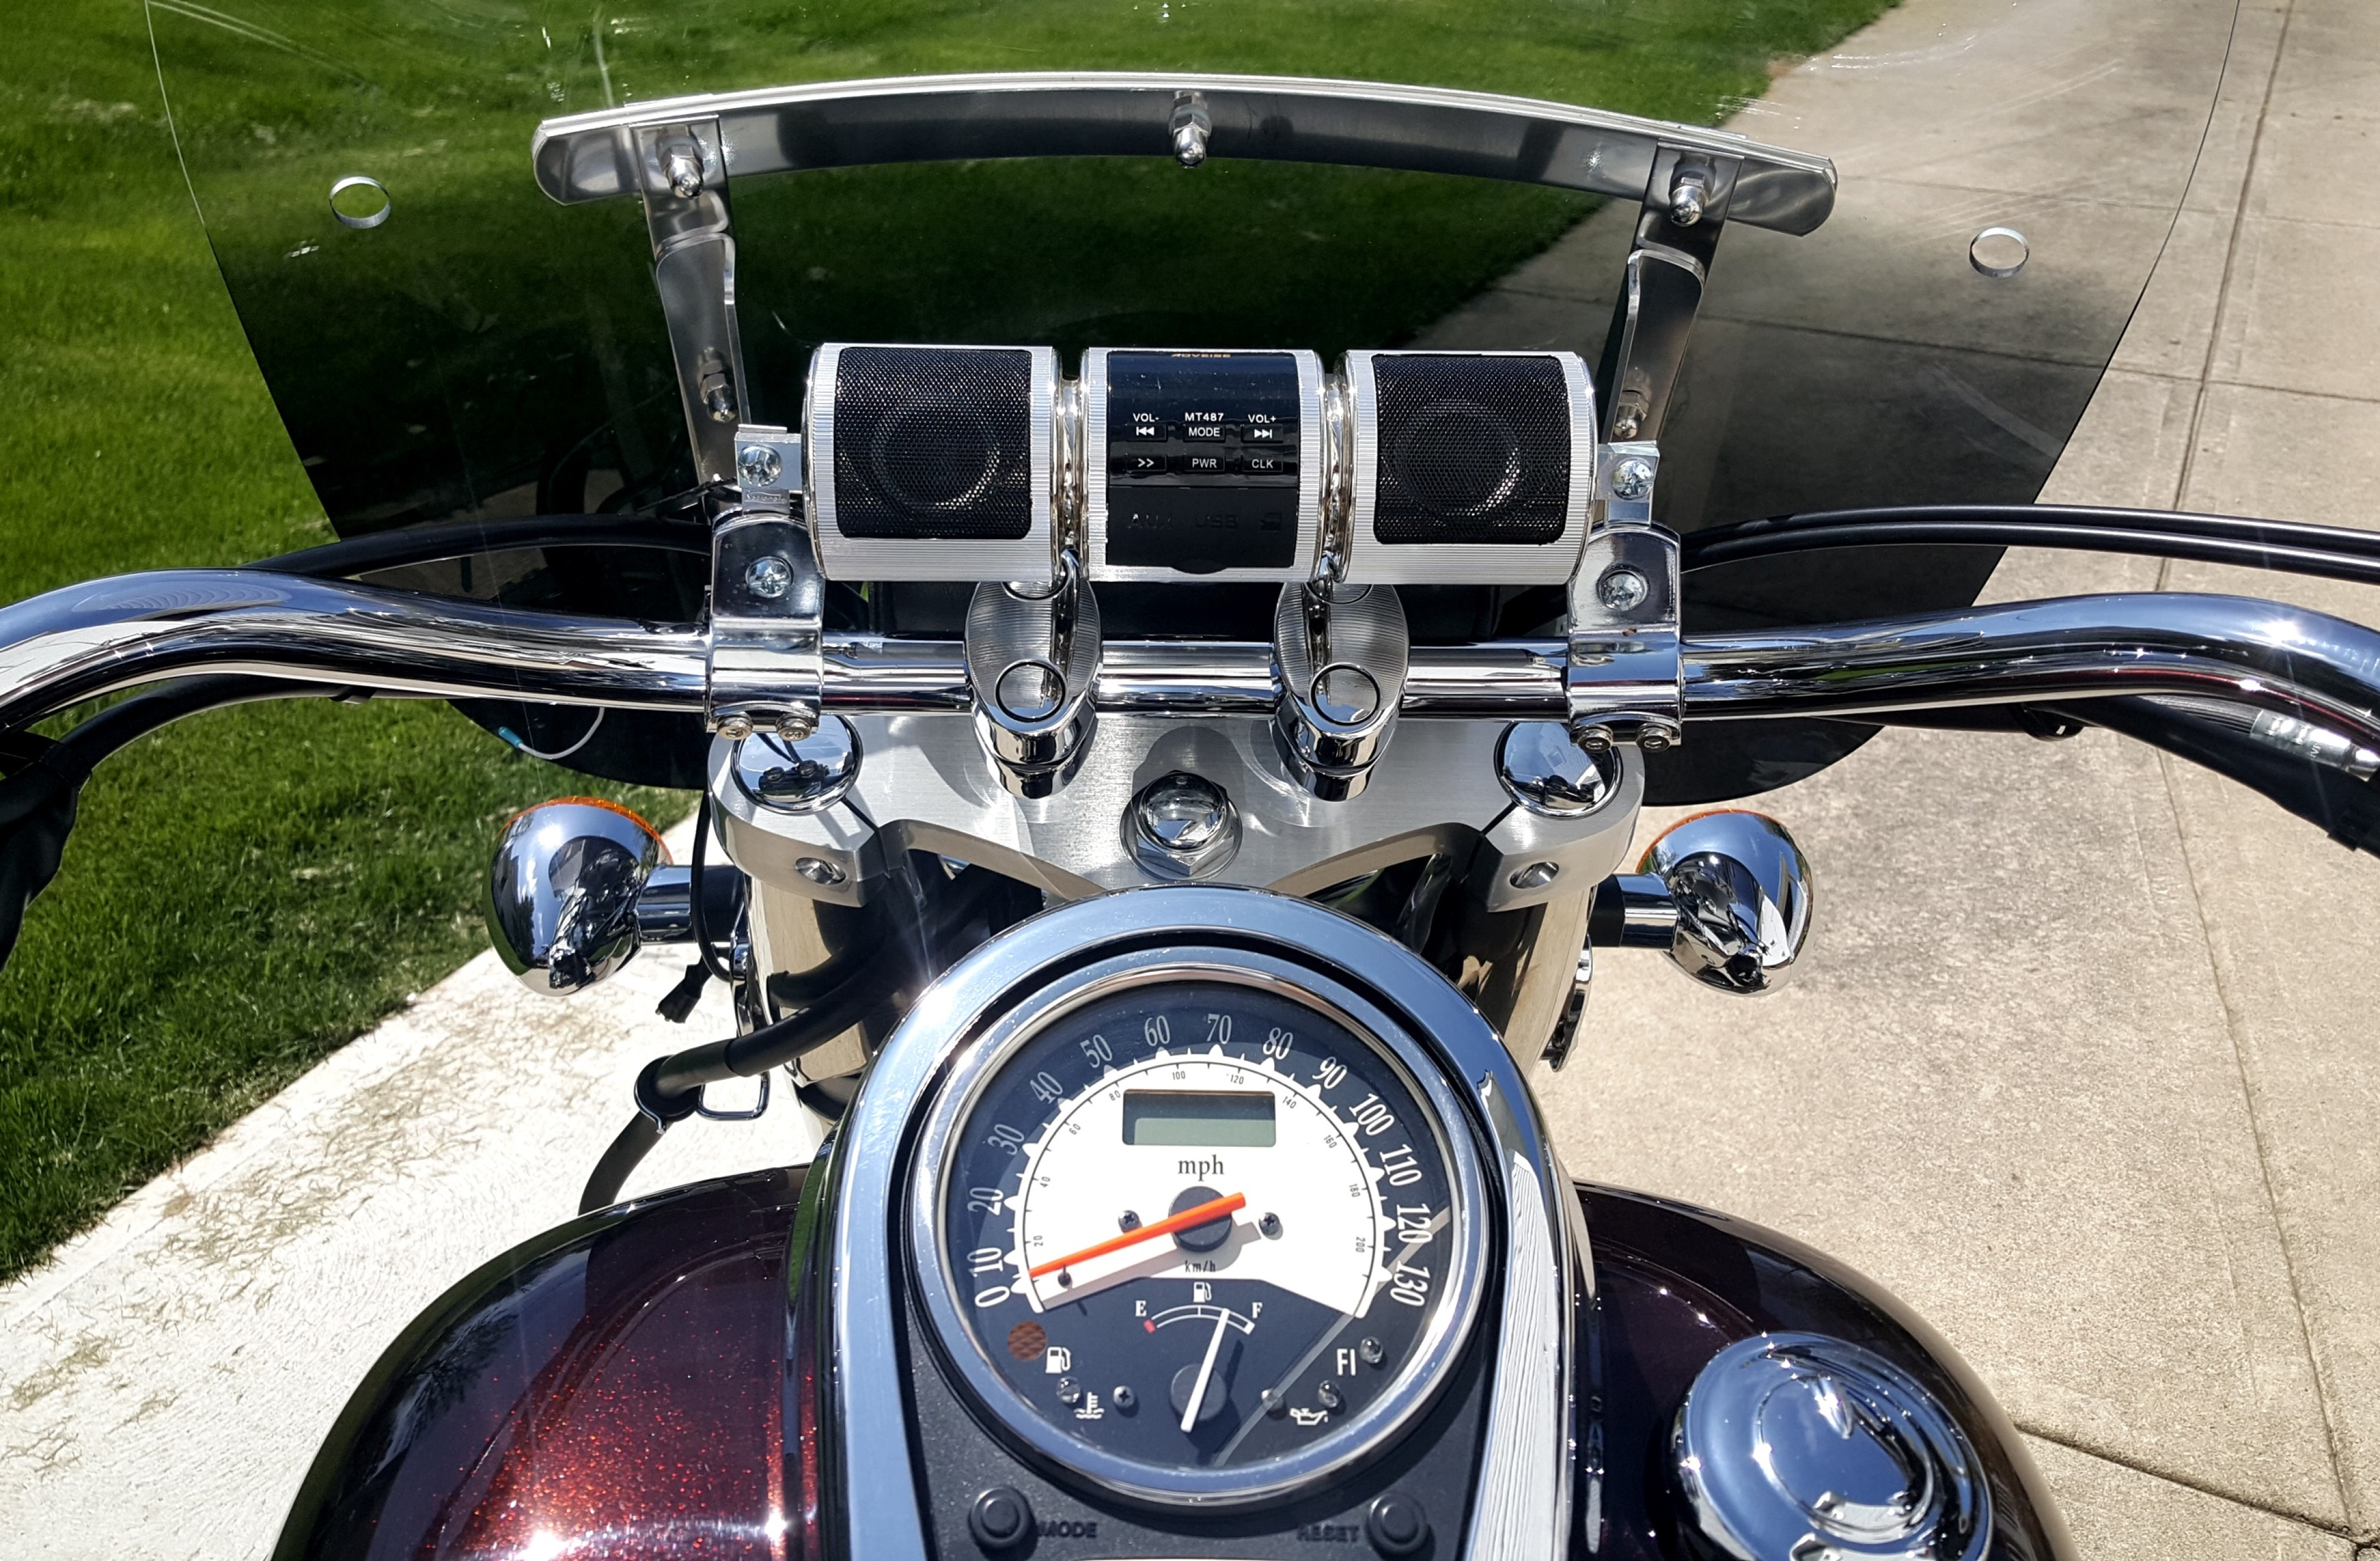 kickstart motorcycle stereo with large handle bar kit for